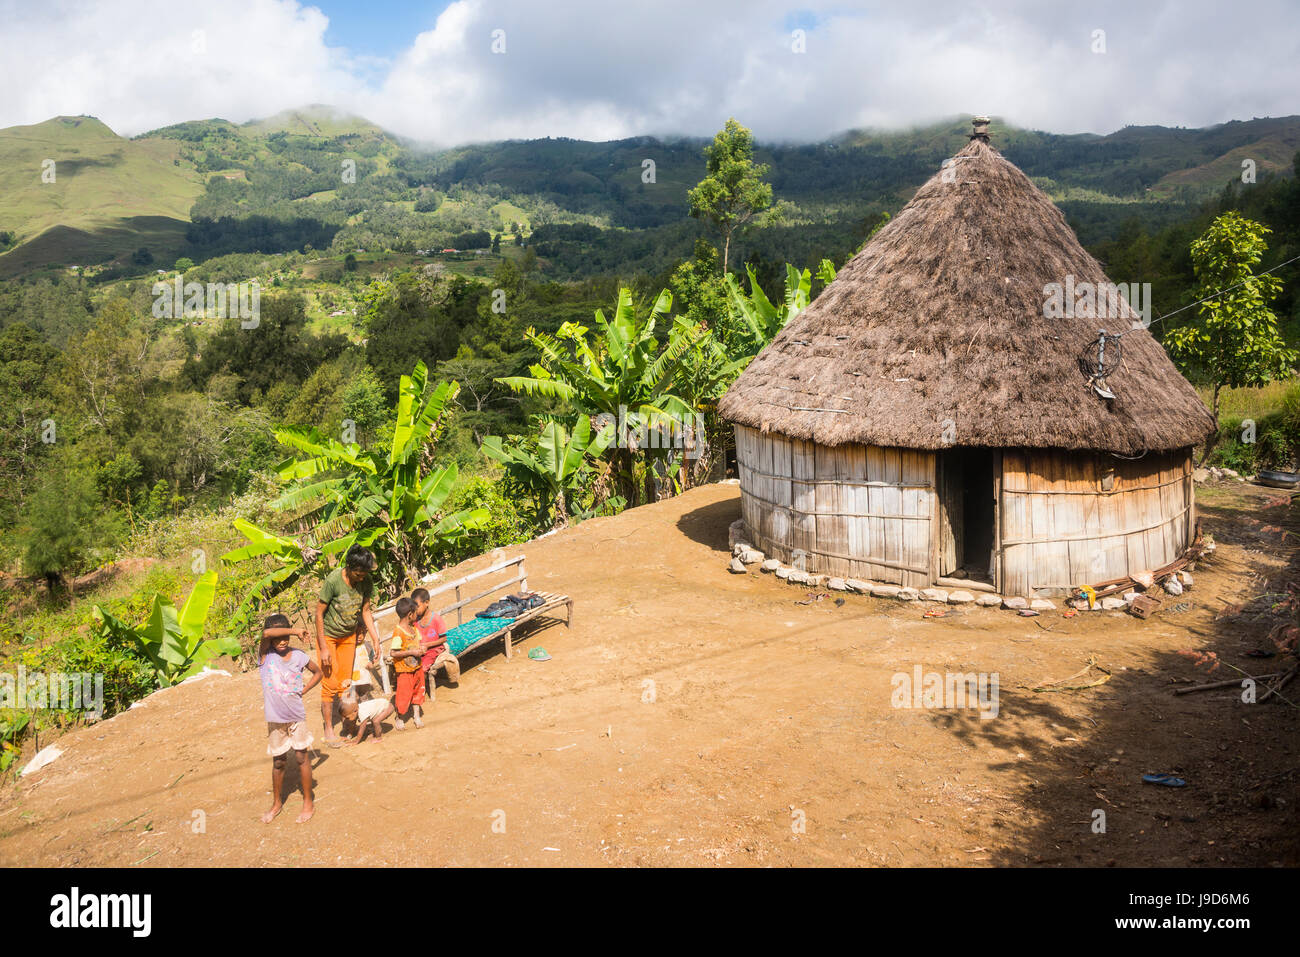 Traditional house in the mountains of Maubisse, East Timor, Southeast Asia, Asia - Stock Image